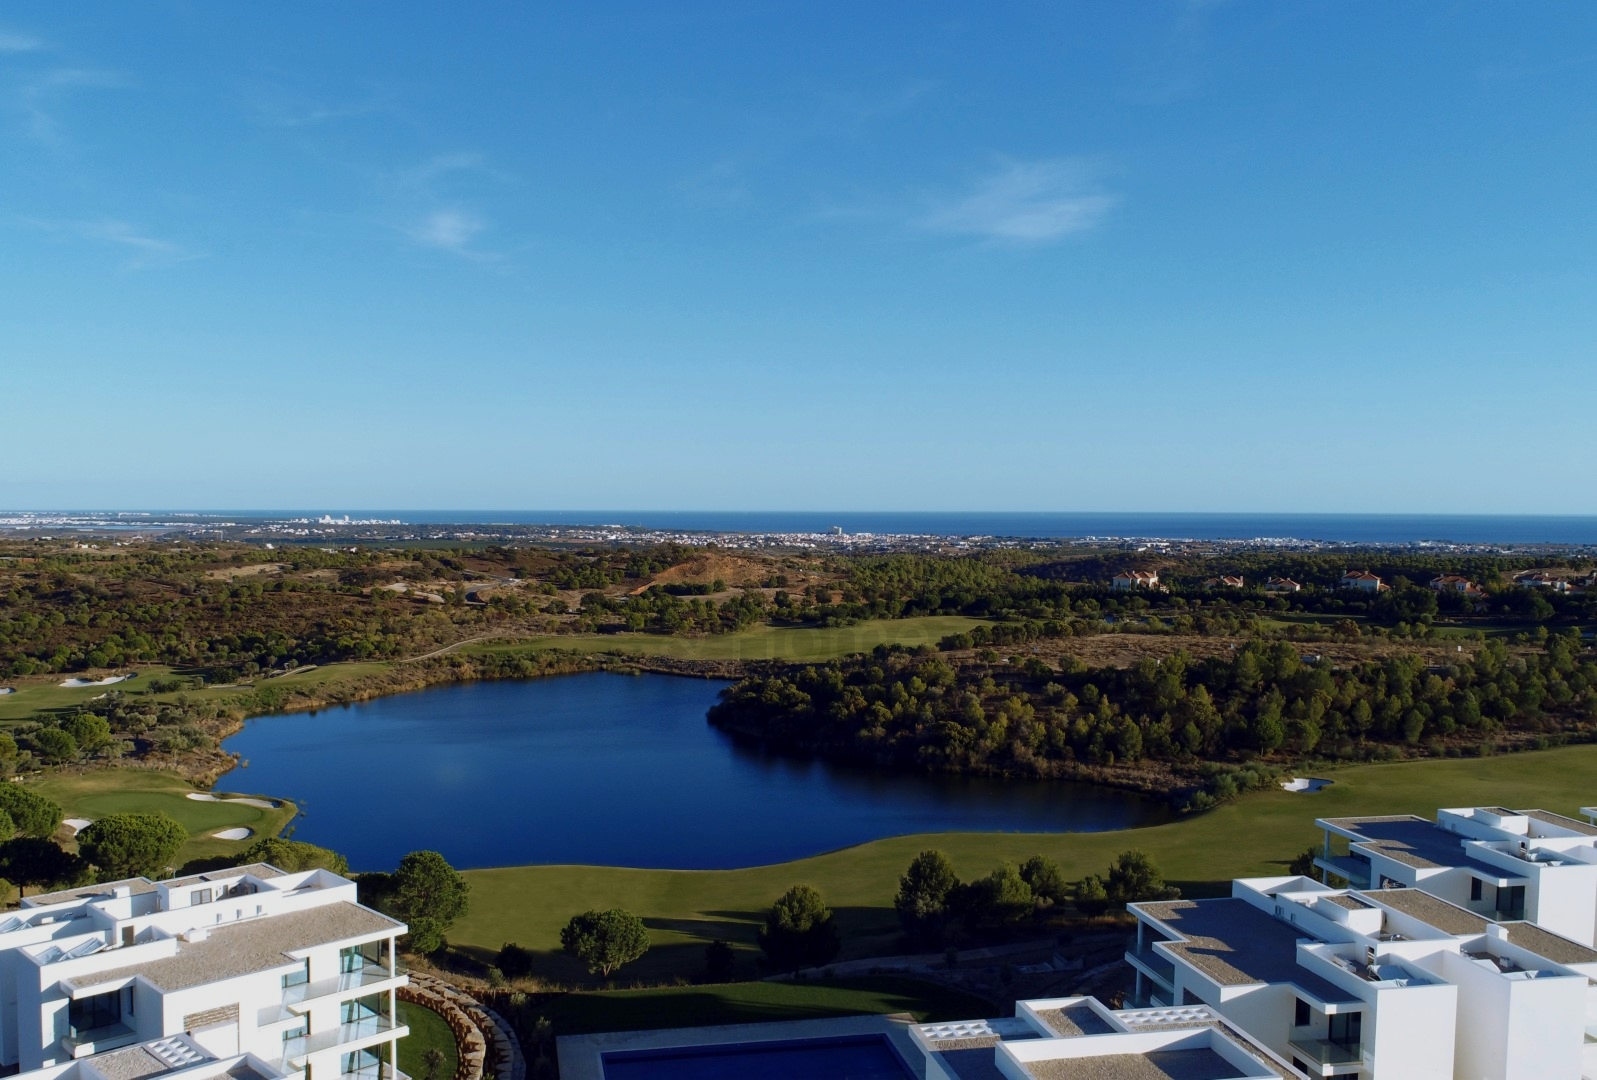 A0582 - Luxury 2 Bedroom Apartments, Monte Rei  Golf Course  Vila Nova de Cacela  Portugal